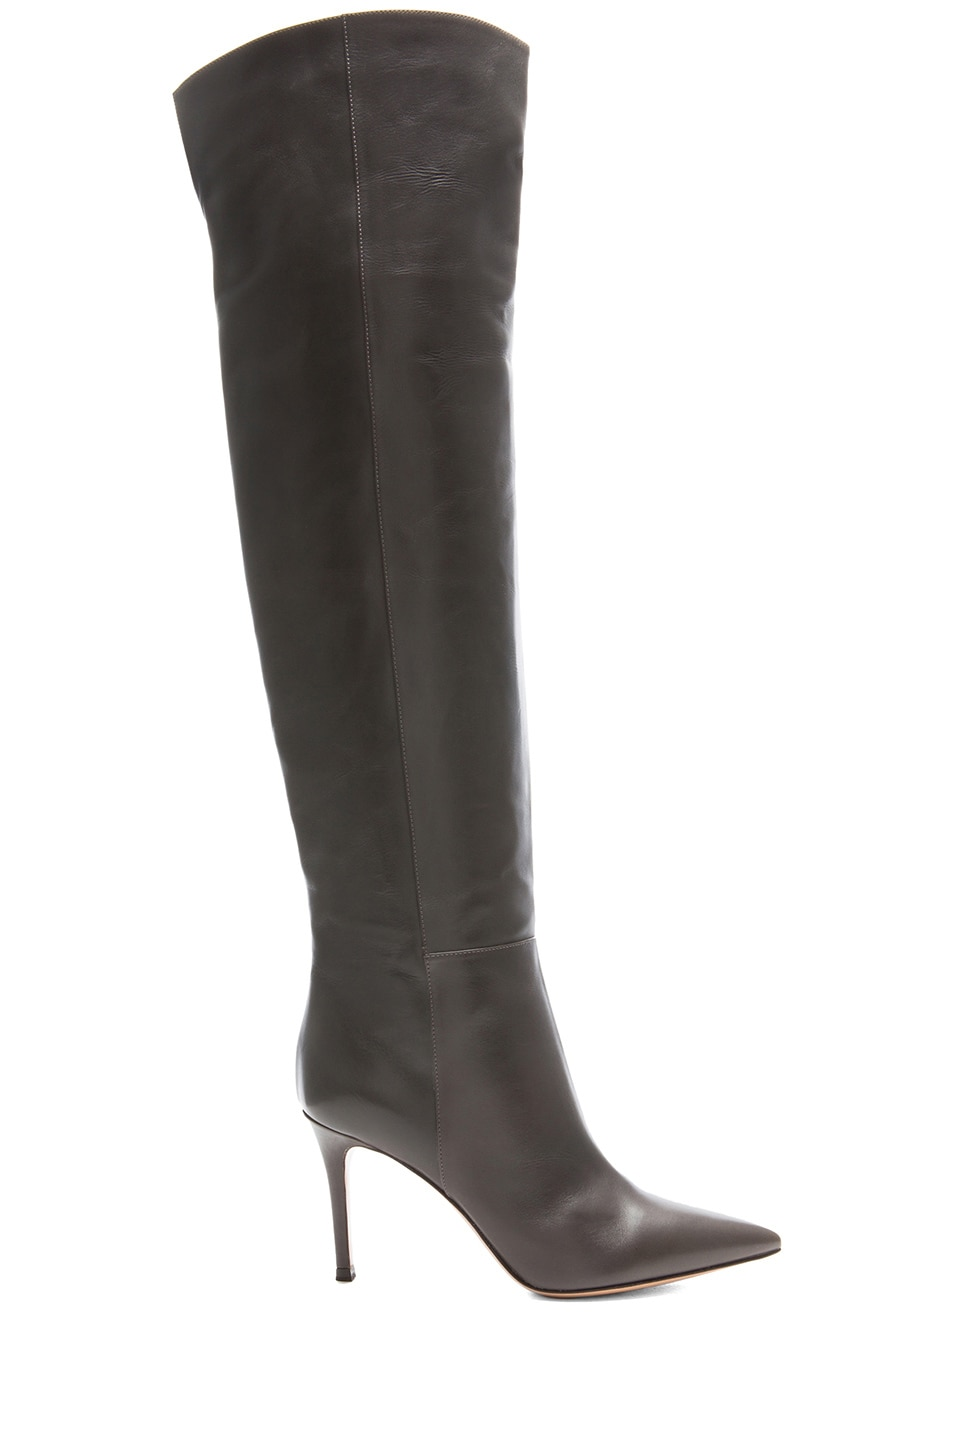 Image 1 of Gianvito Rossi Over The Knee Leather Boots in Grey